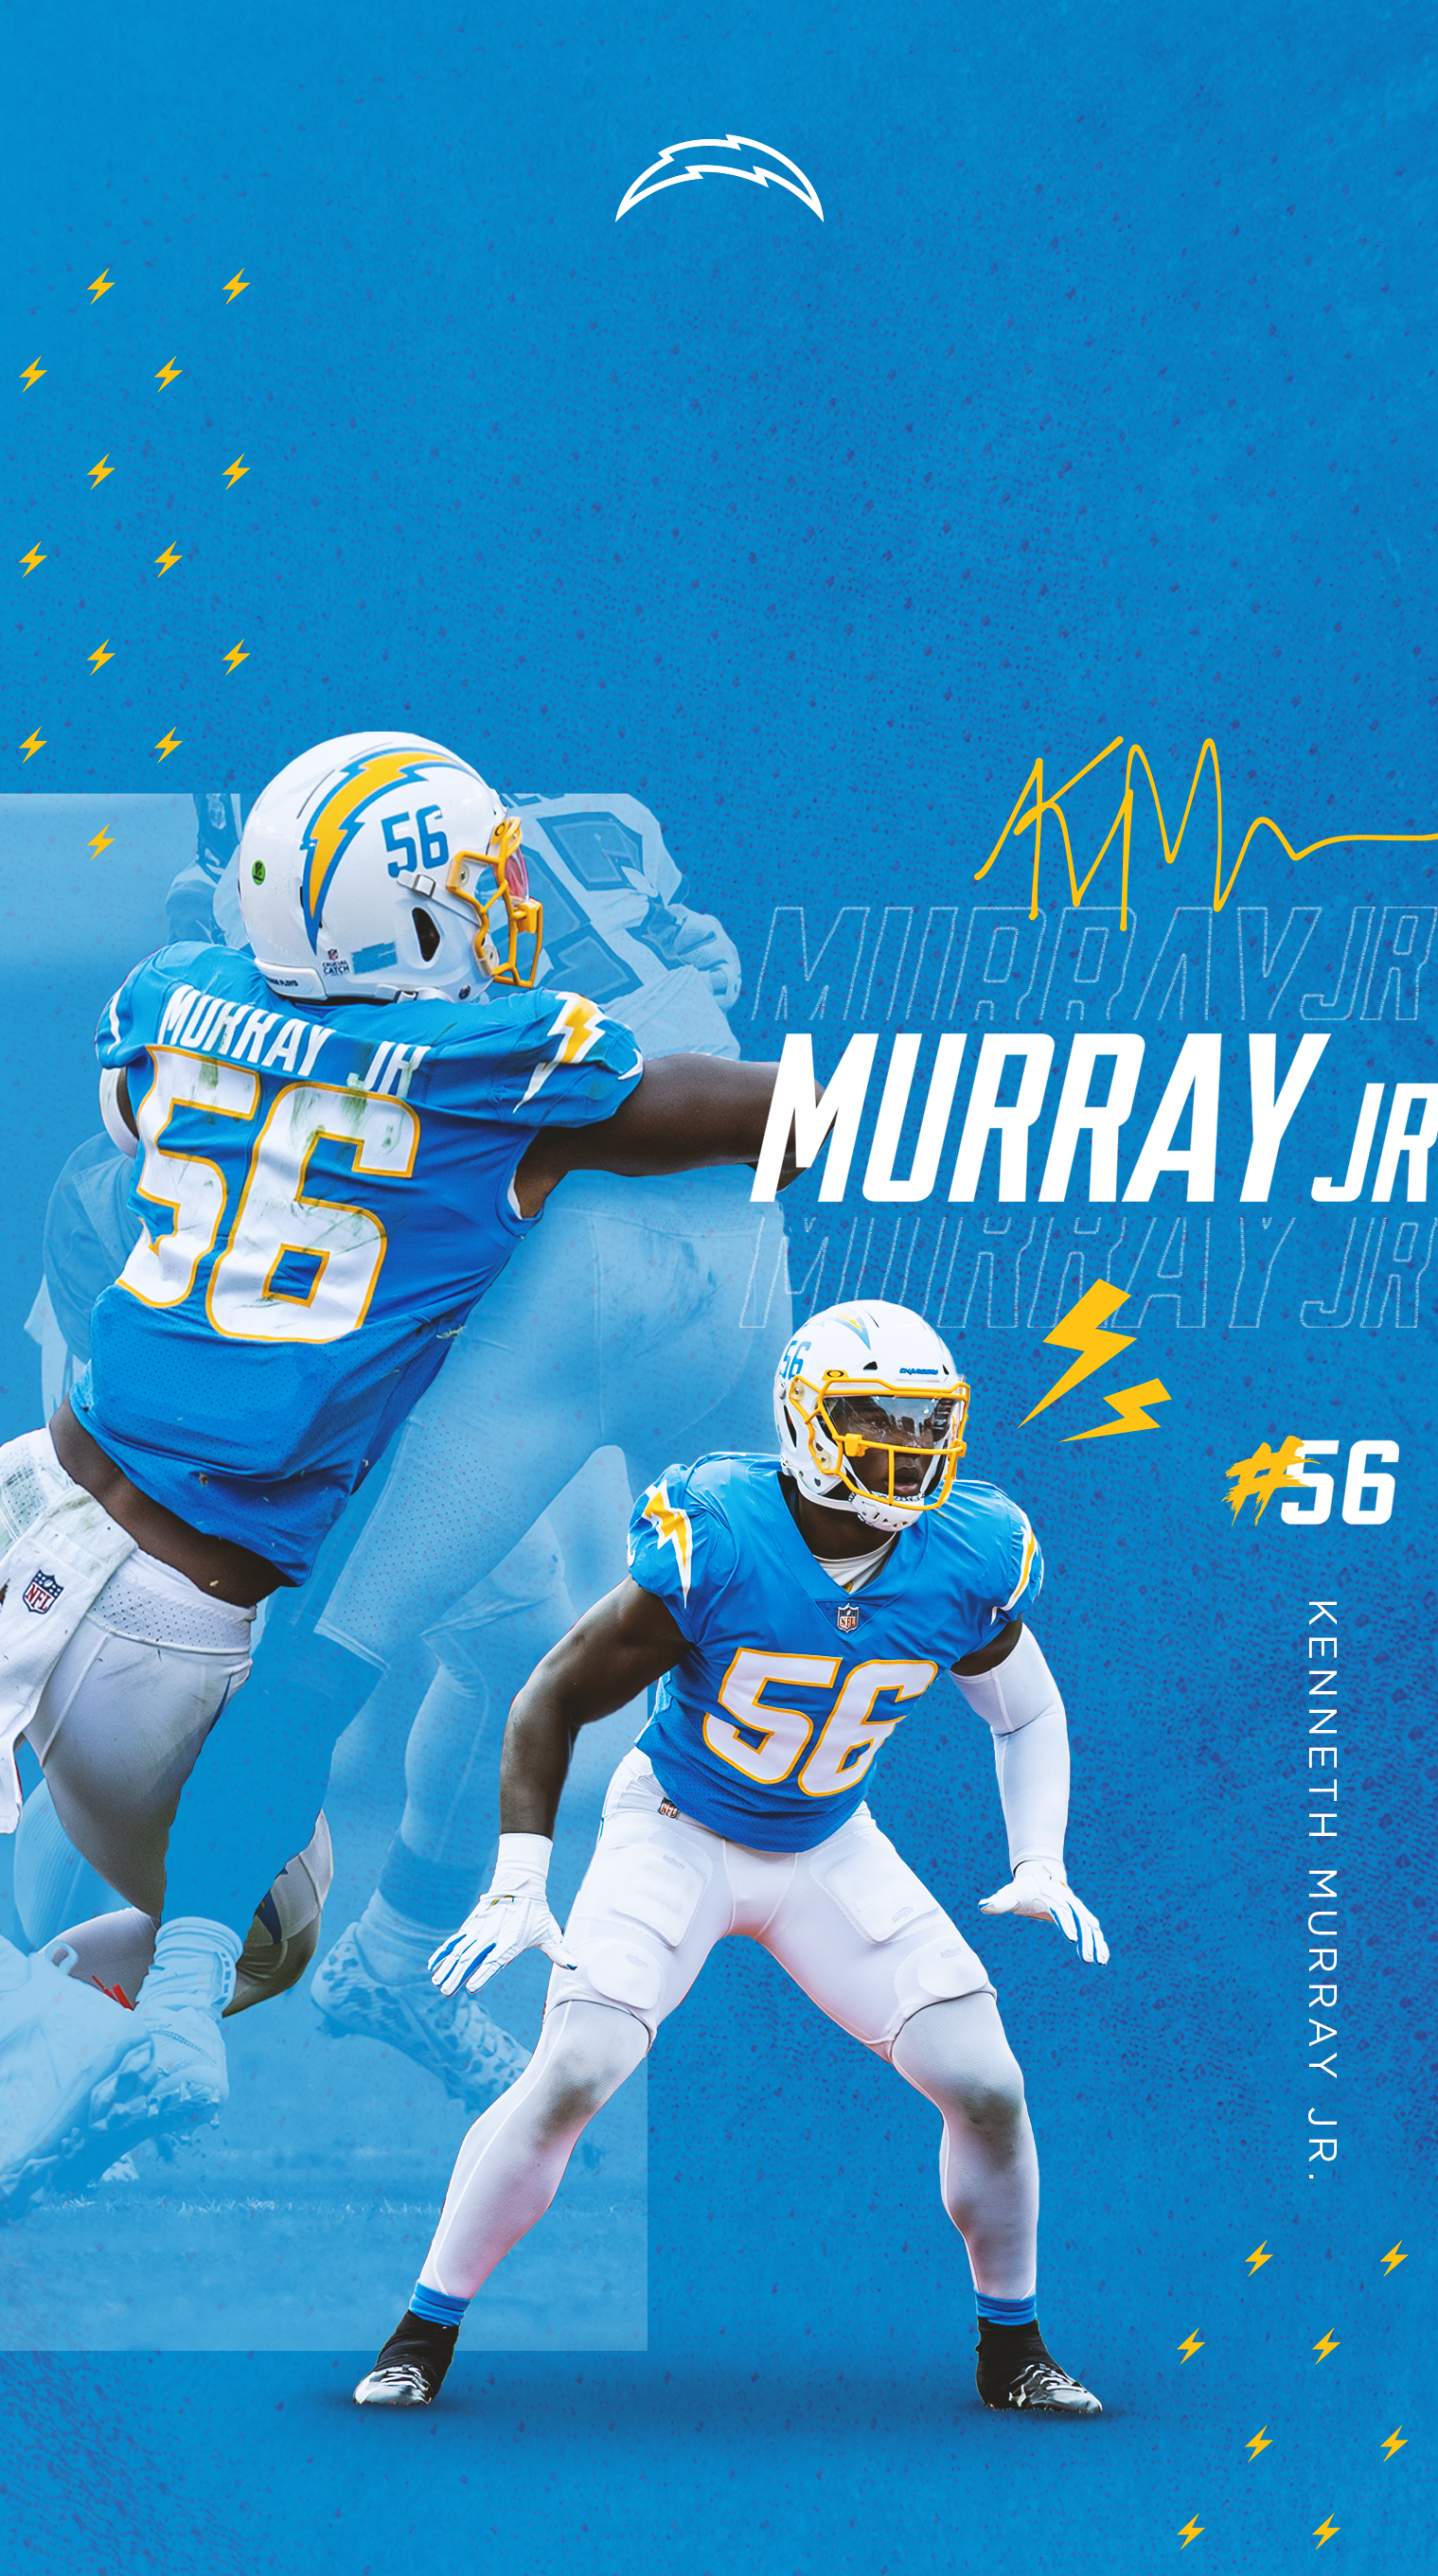 100620_Wallpaper-K_MURRAYJr